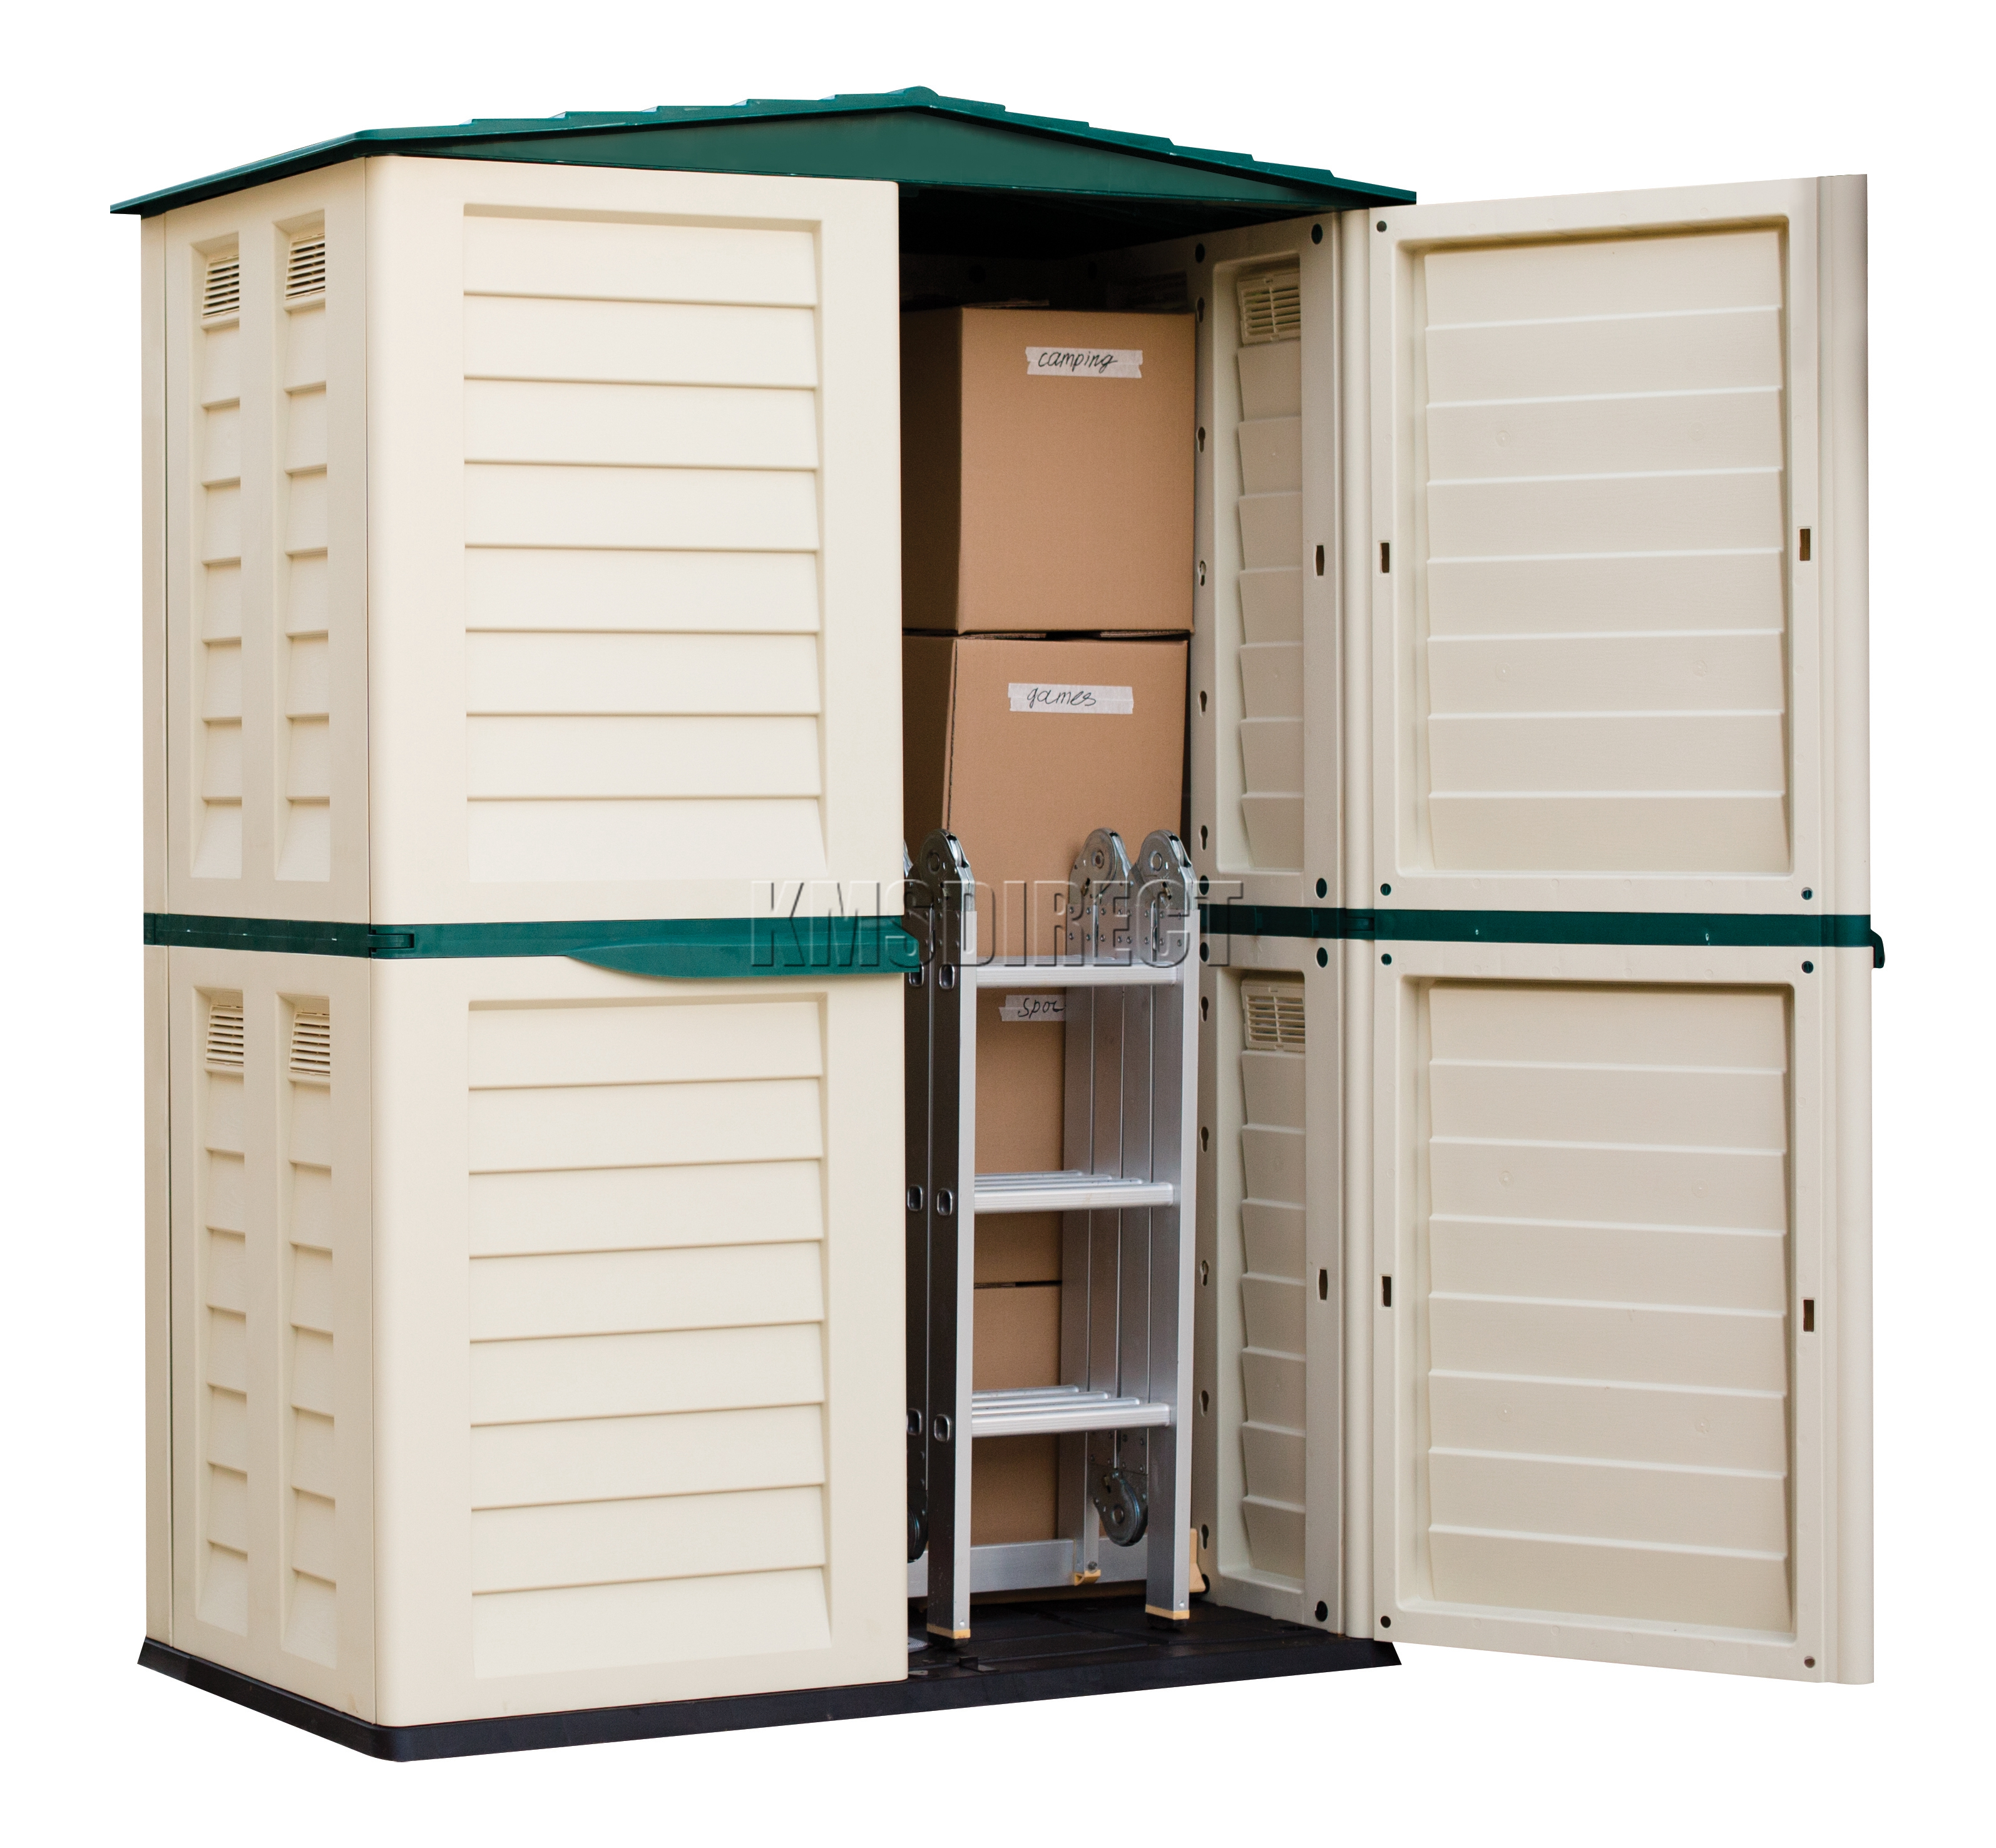 Garden Sheds Jersey Channel Islands starplast outdoor plastic garden tall shed box storage unit 5ft x